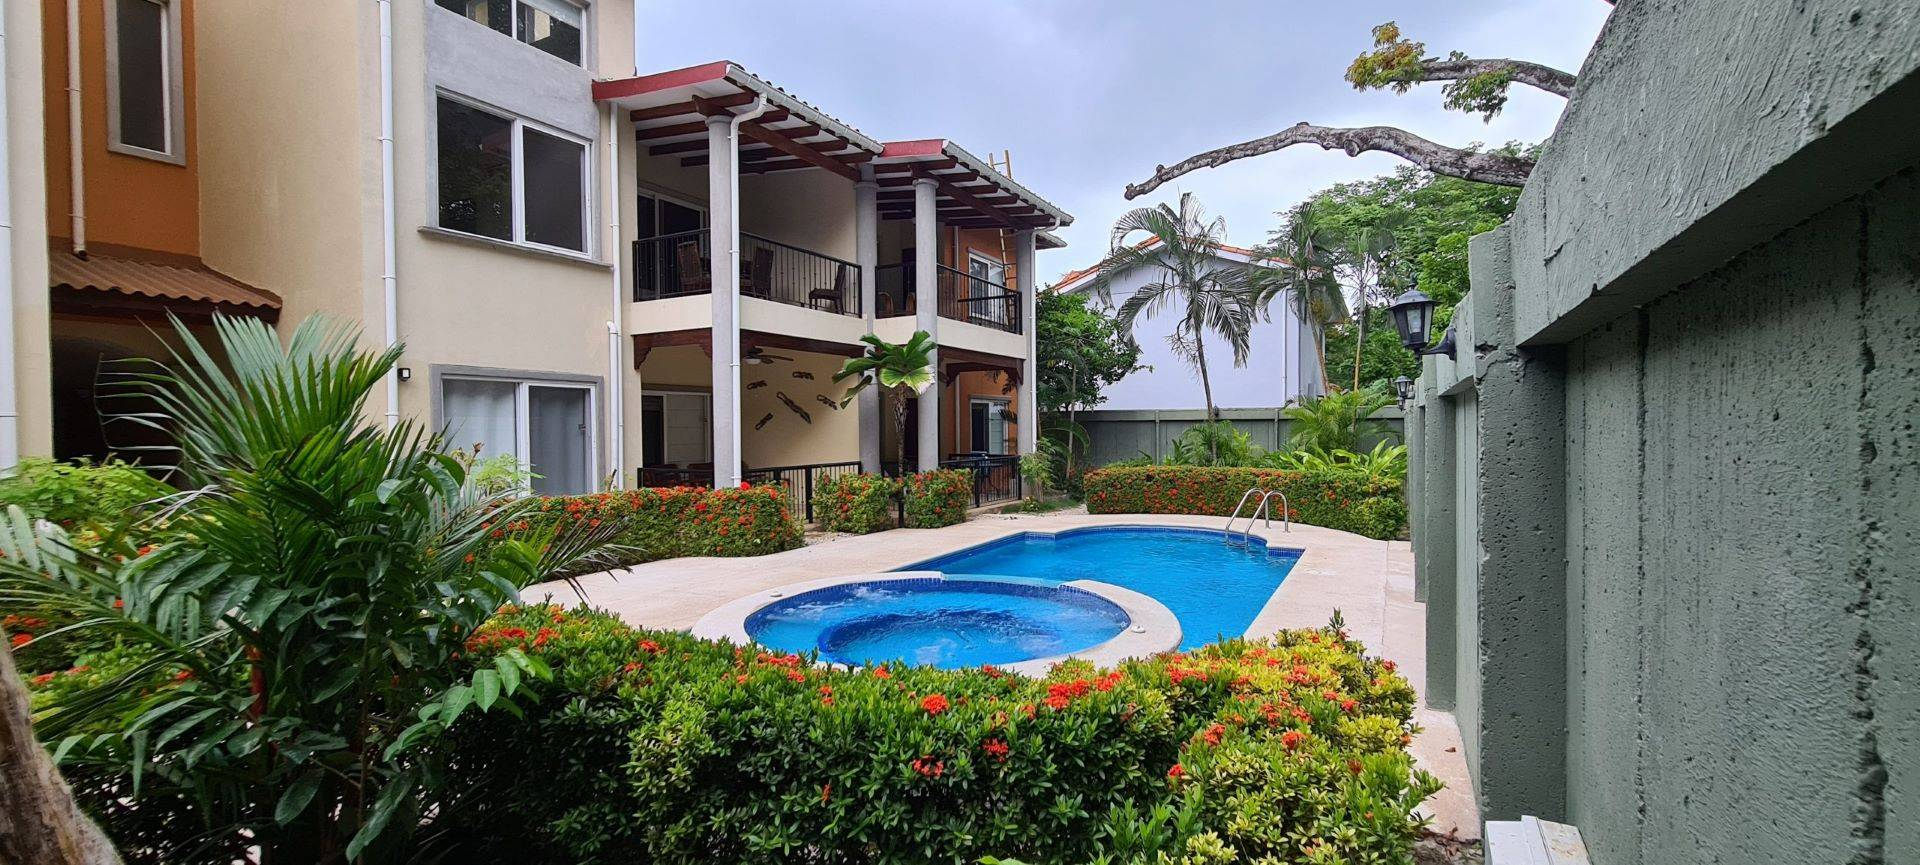 Villa Jazmin #201- Cozy Condo Walking Distance to the Beach-SOLD!